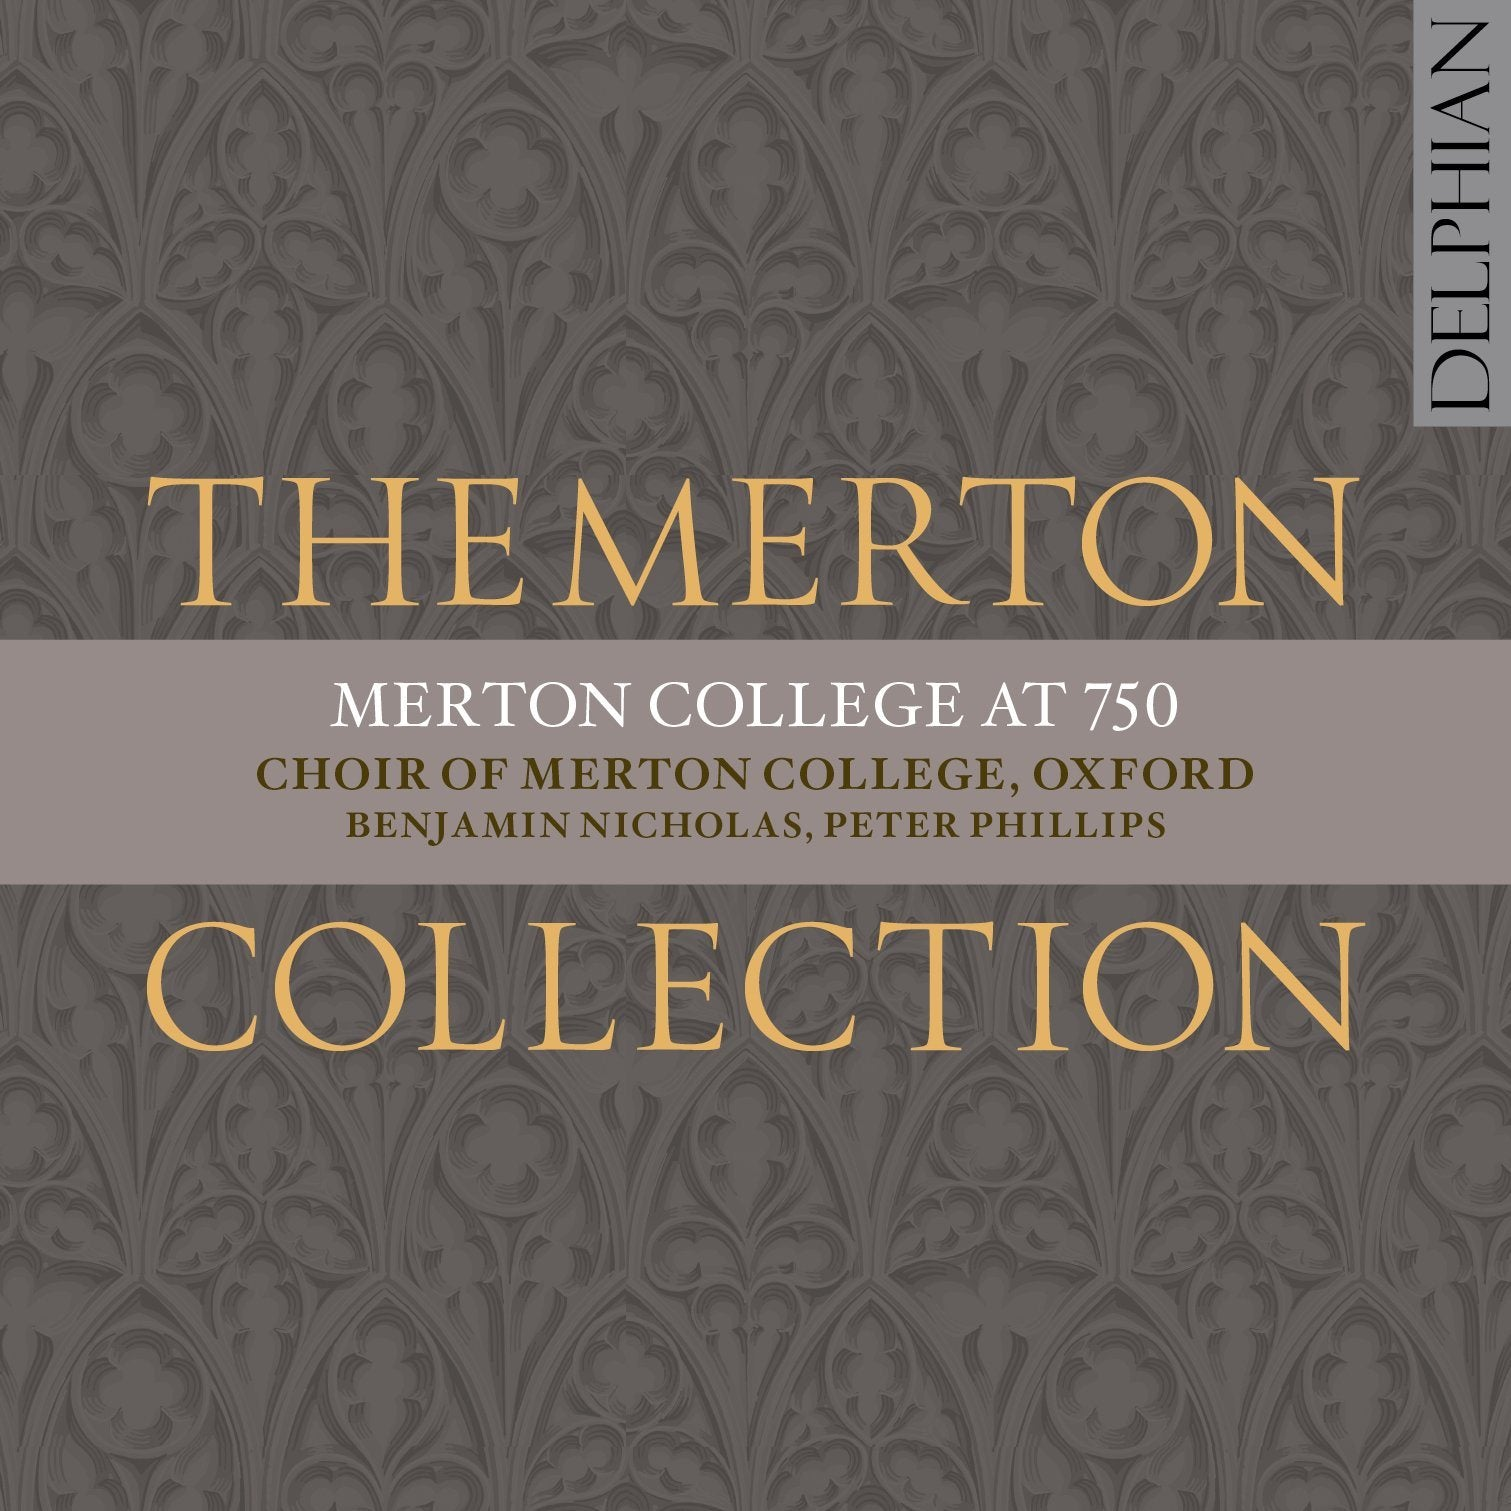 The Merton Collection: Merton College at 750 CD Delphian Records